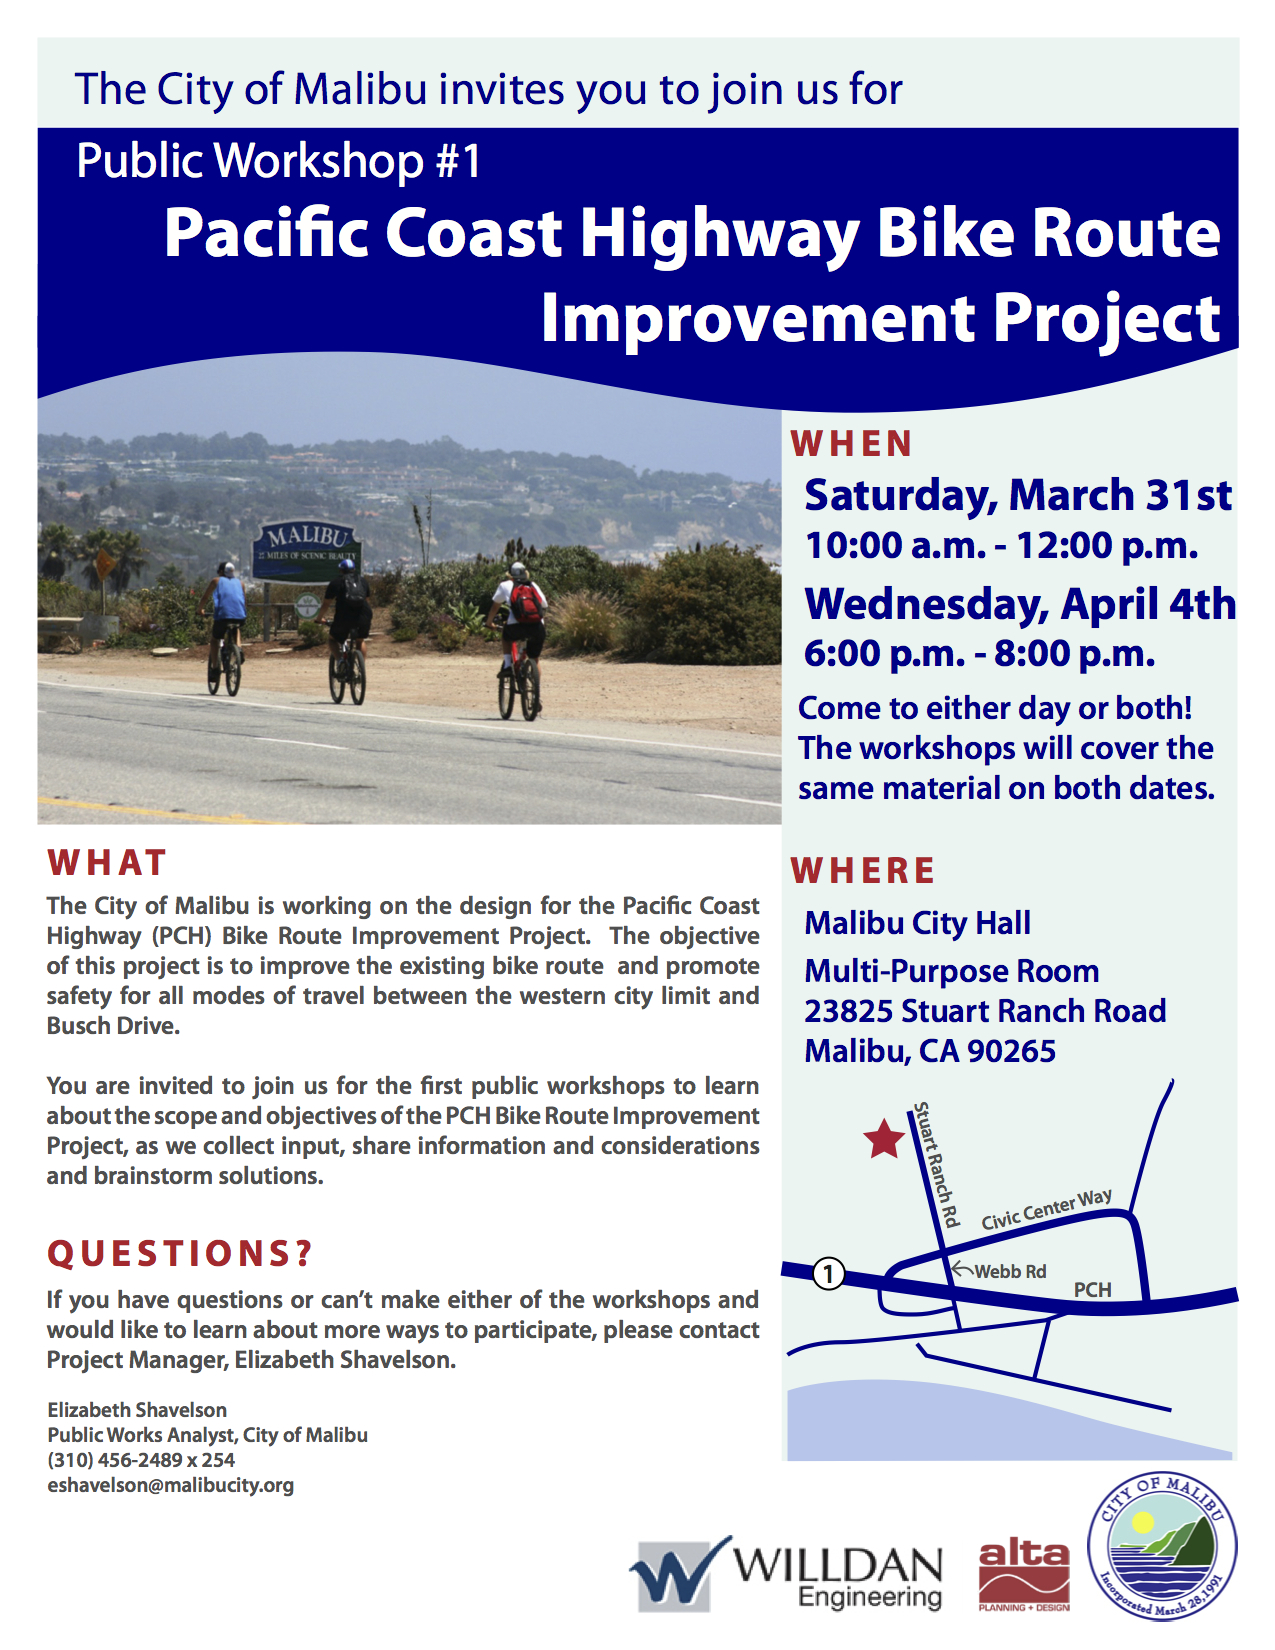 Public workshops for PCH Bike Route Improvement Project in Malibu